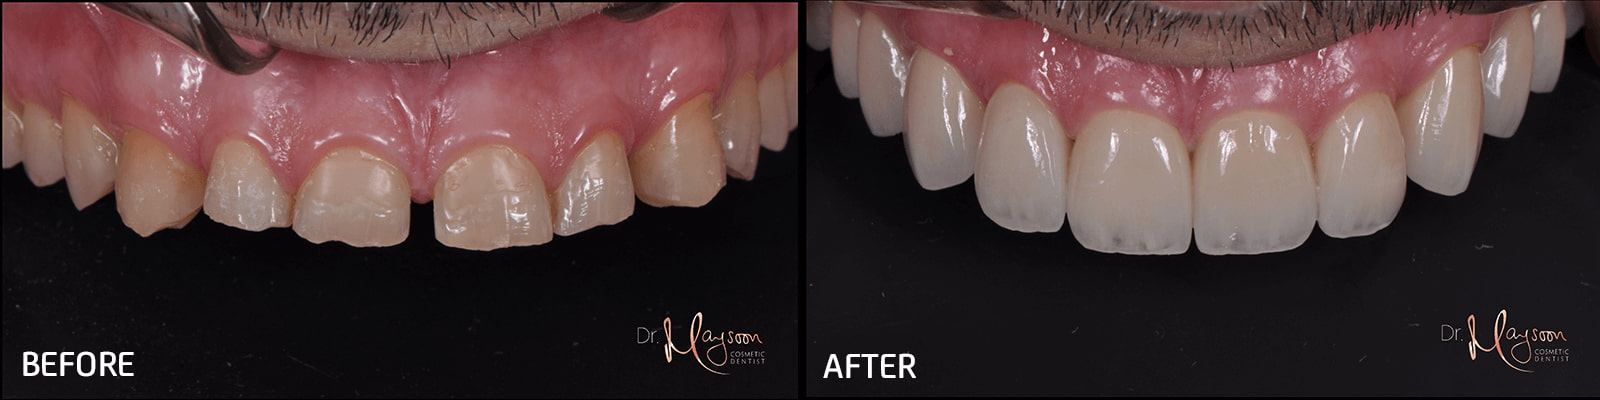 smile makeover with porcelain veneers crowns dr tosun dental clinic